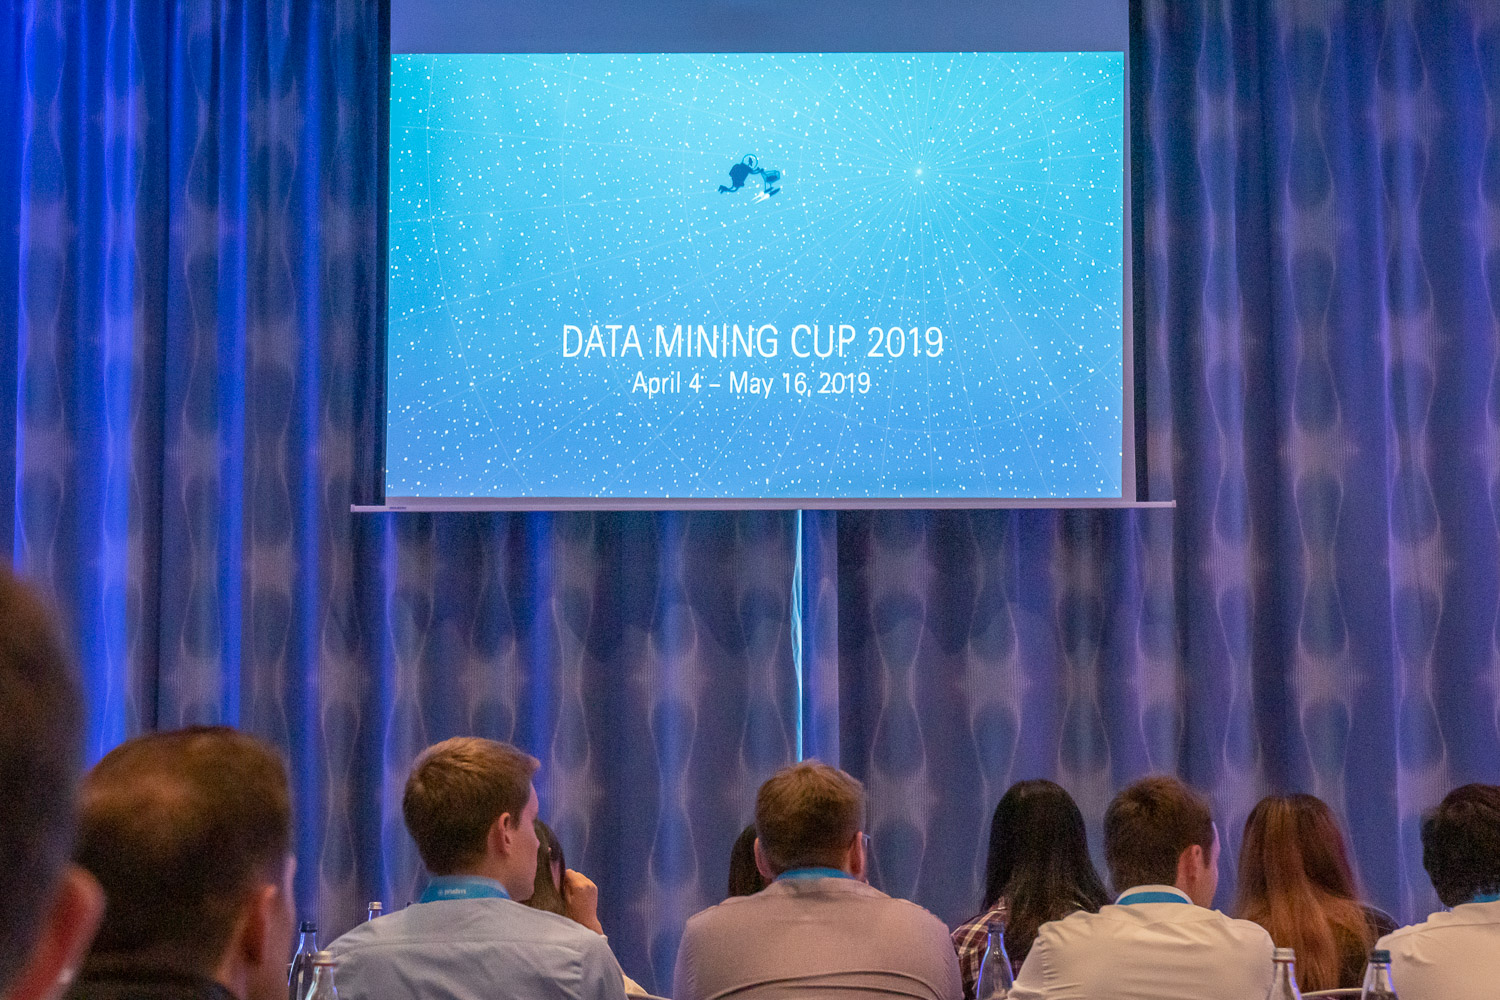 prudsys retail intelligence summit 2019 | Conference on AI in Retail | DMC Presentations of the top 10 teams